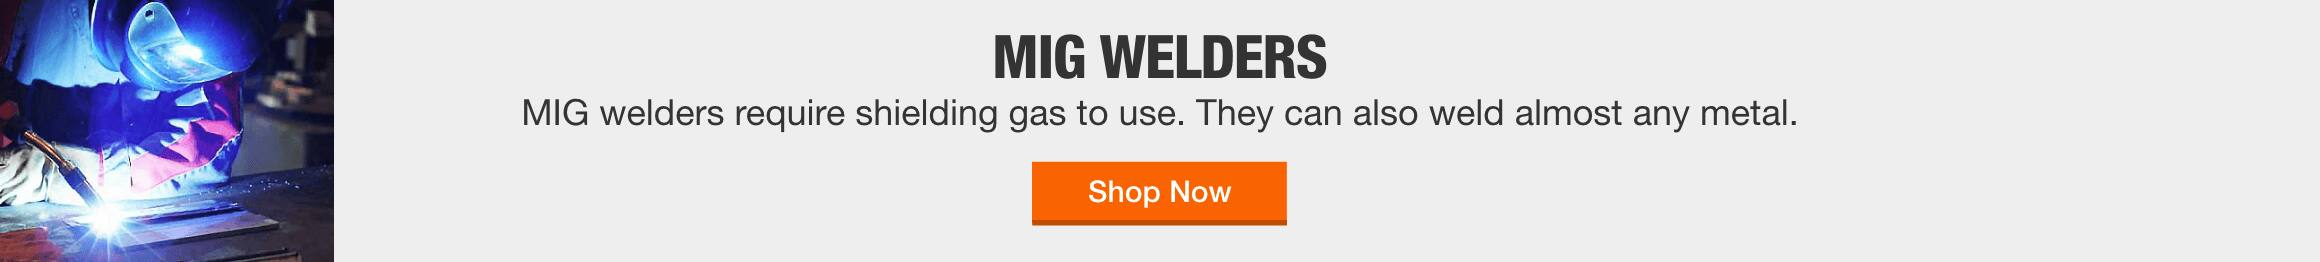 MIG Welders MIG welders require shielding gas to use. They can also weld almost any metal.